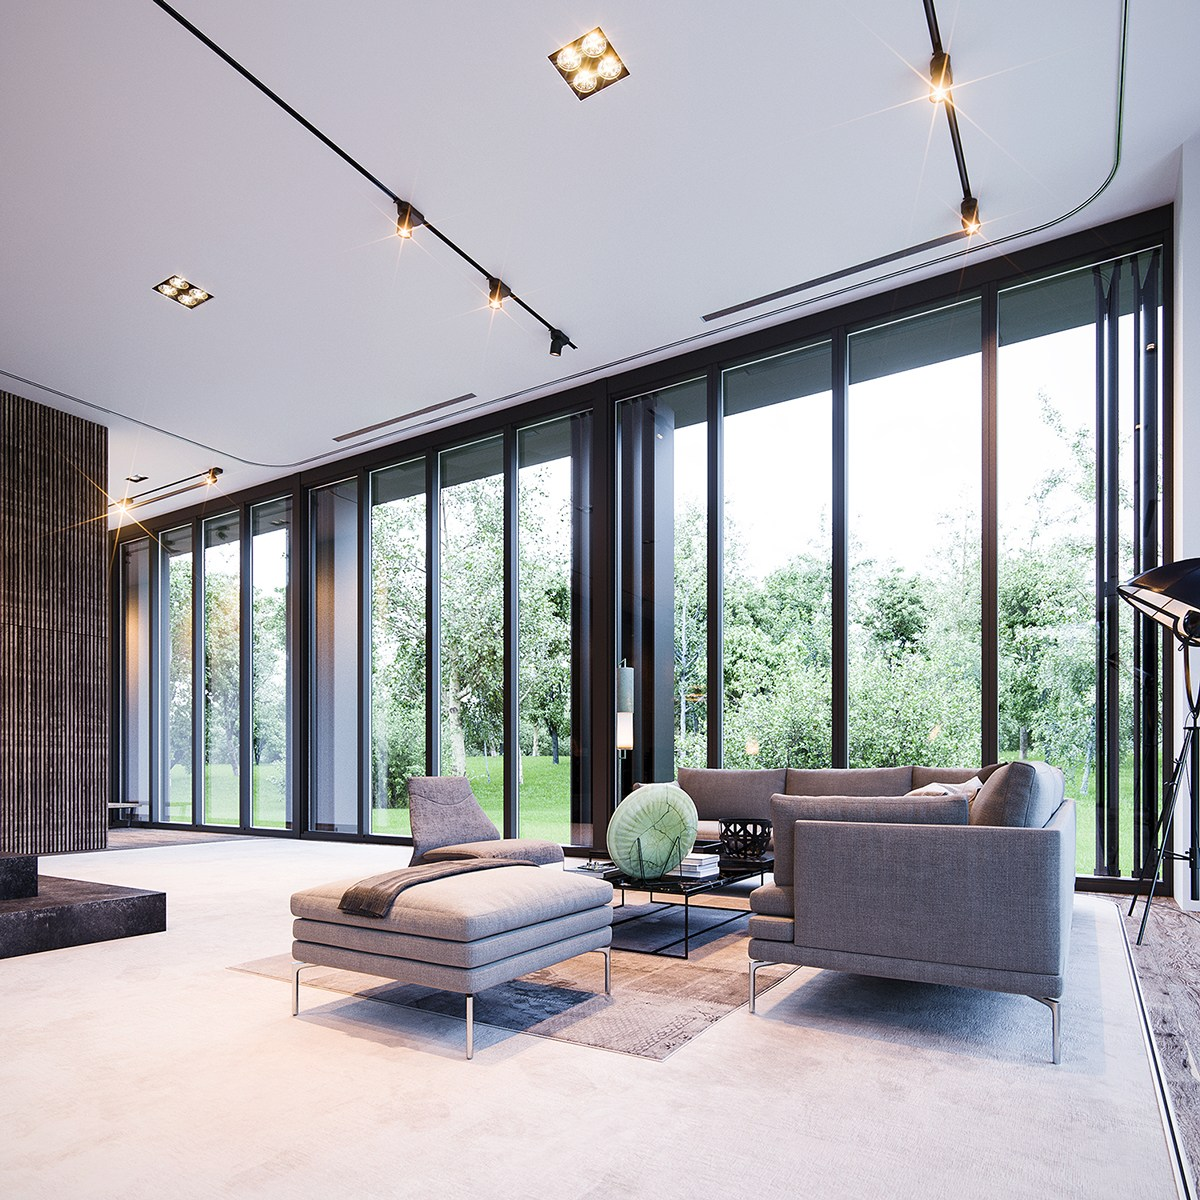 3 natural interior concepts with floor to ceiling windows Ceiling window